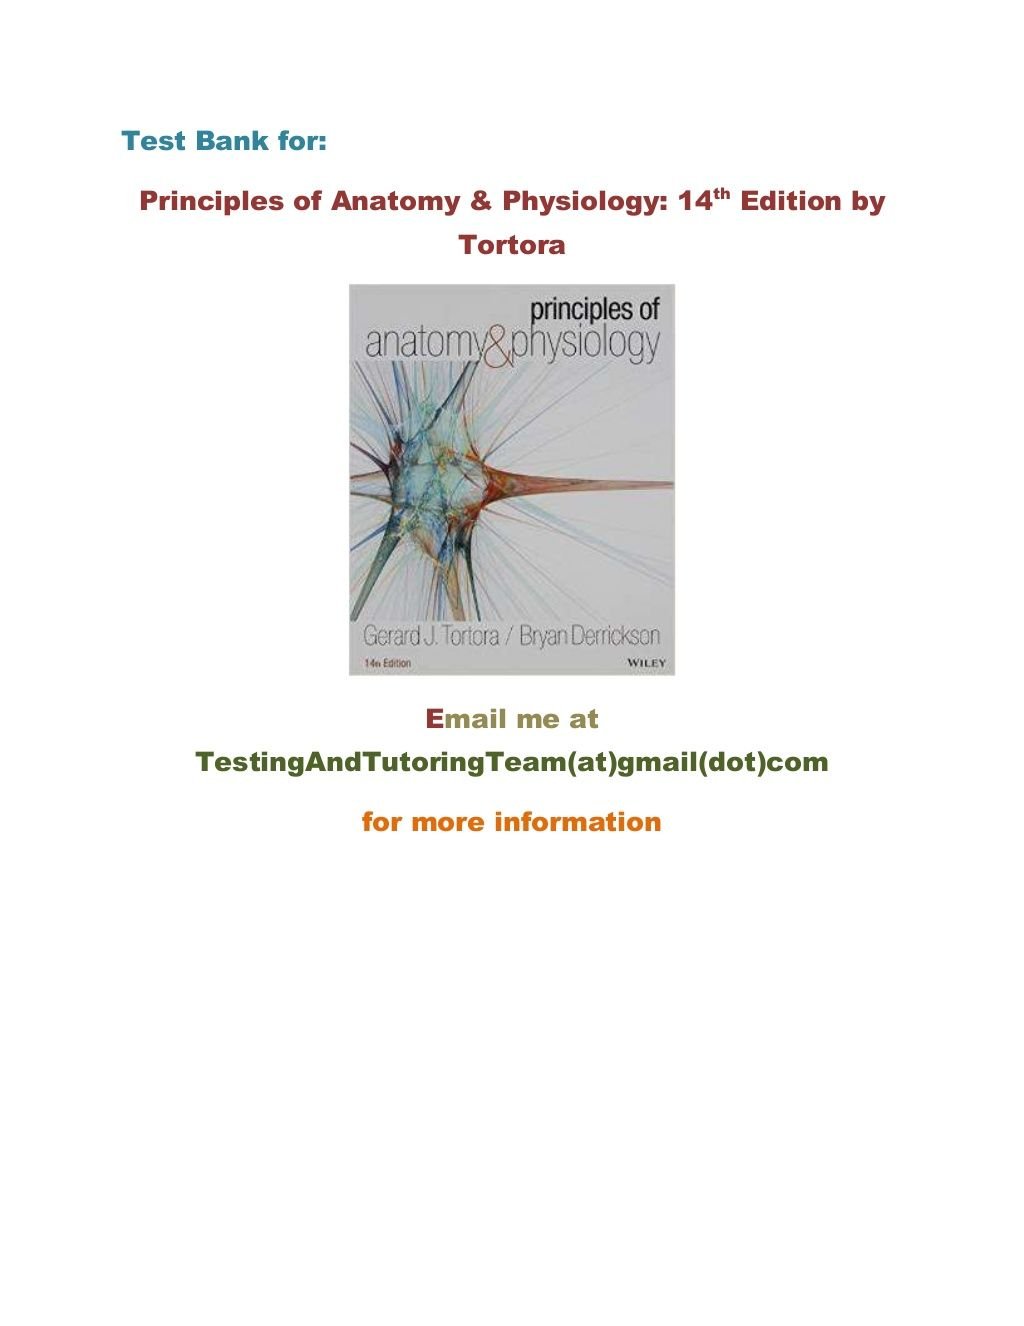 Test Bank for Principles of Anatomy & Physiology 14th Edition by ...